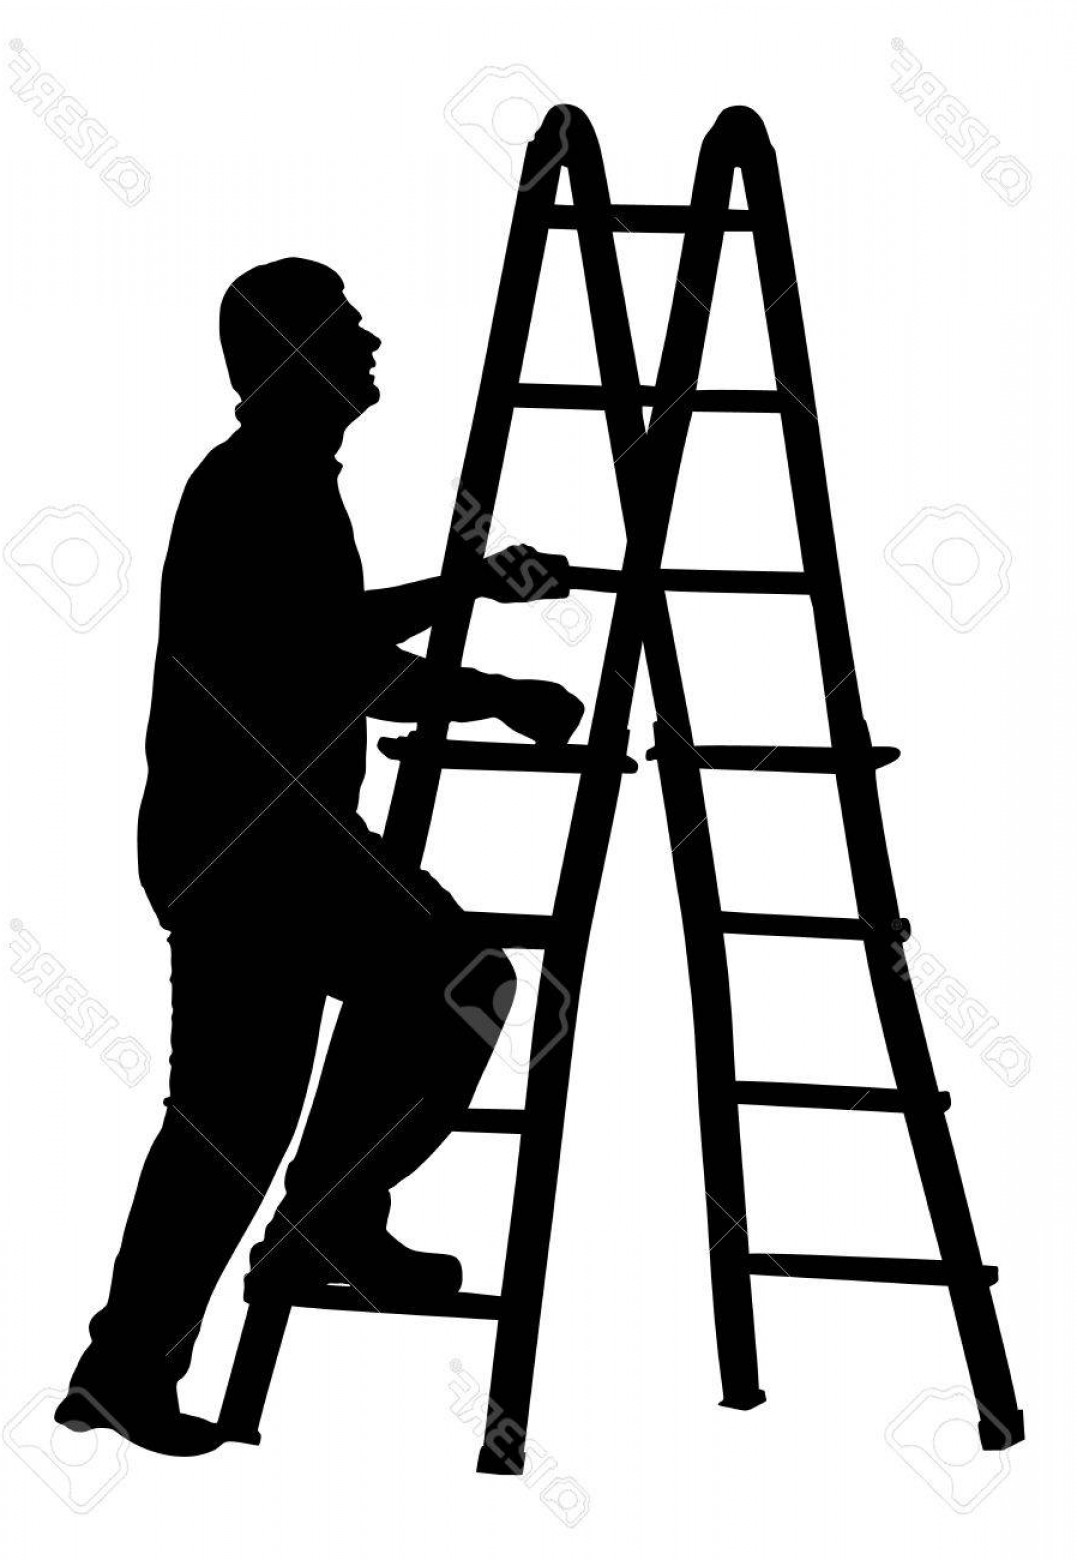 Ladder Silhouette Vector: Photostock Vector Builder Climb To Ladder Vector Silhouette Isolated On White Background Construction Worker With Ladd